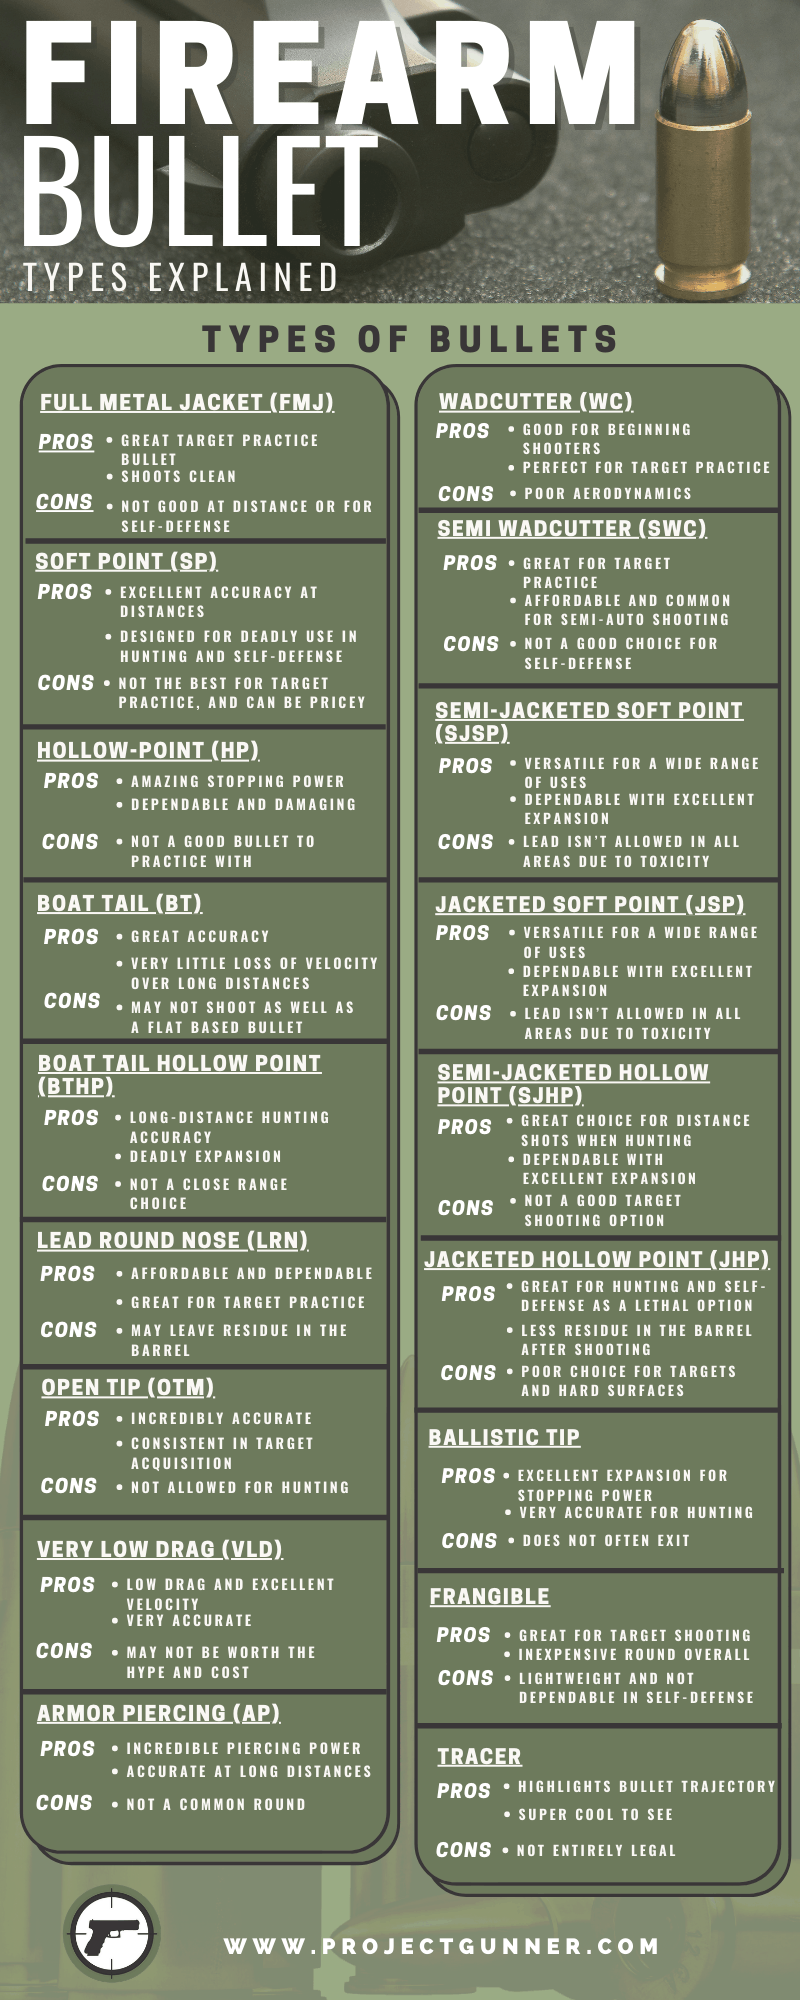 Firearm Bullet Types Explained-Infographic